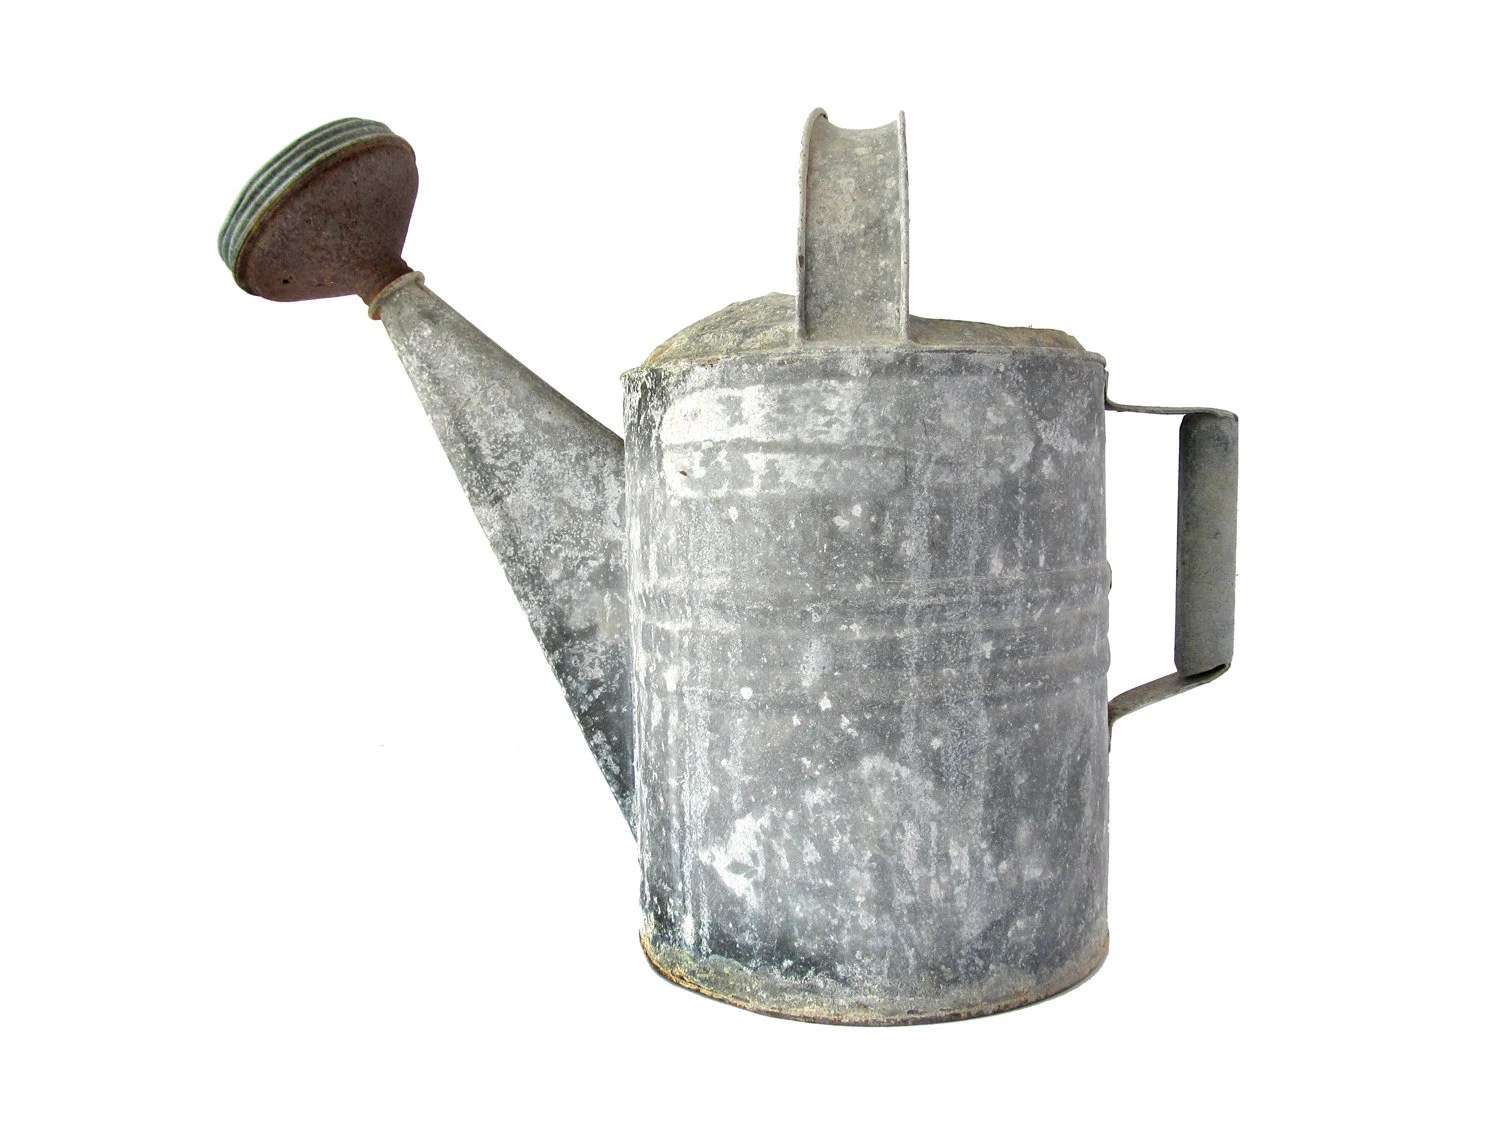 Galvanized Watering Cans Vintage Watering Can Galvanized Metal